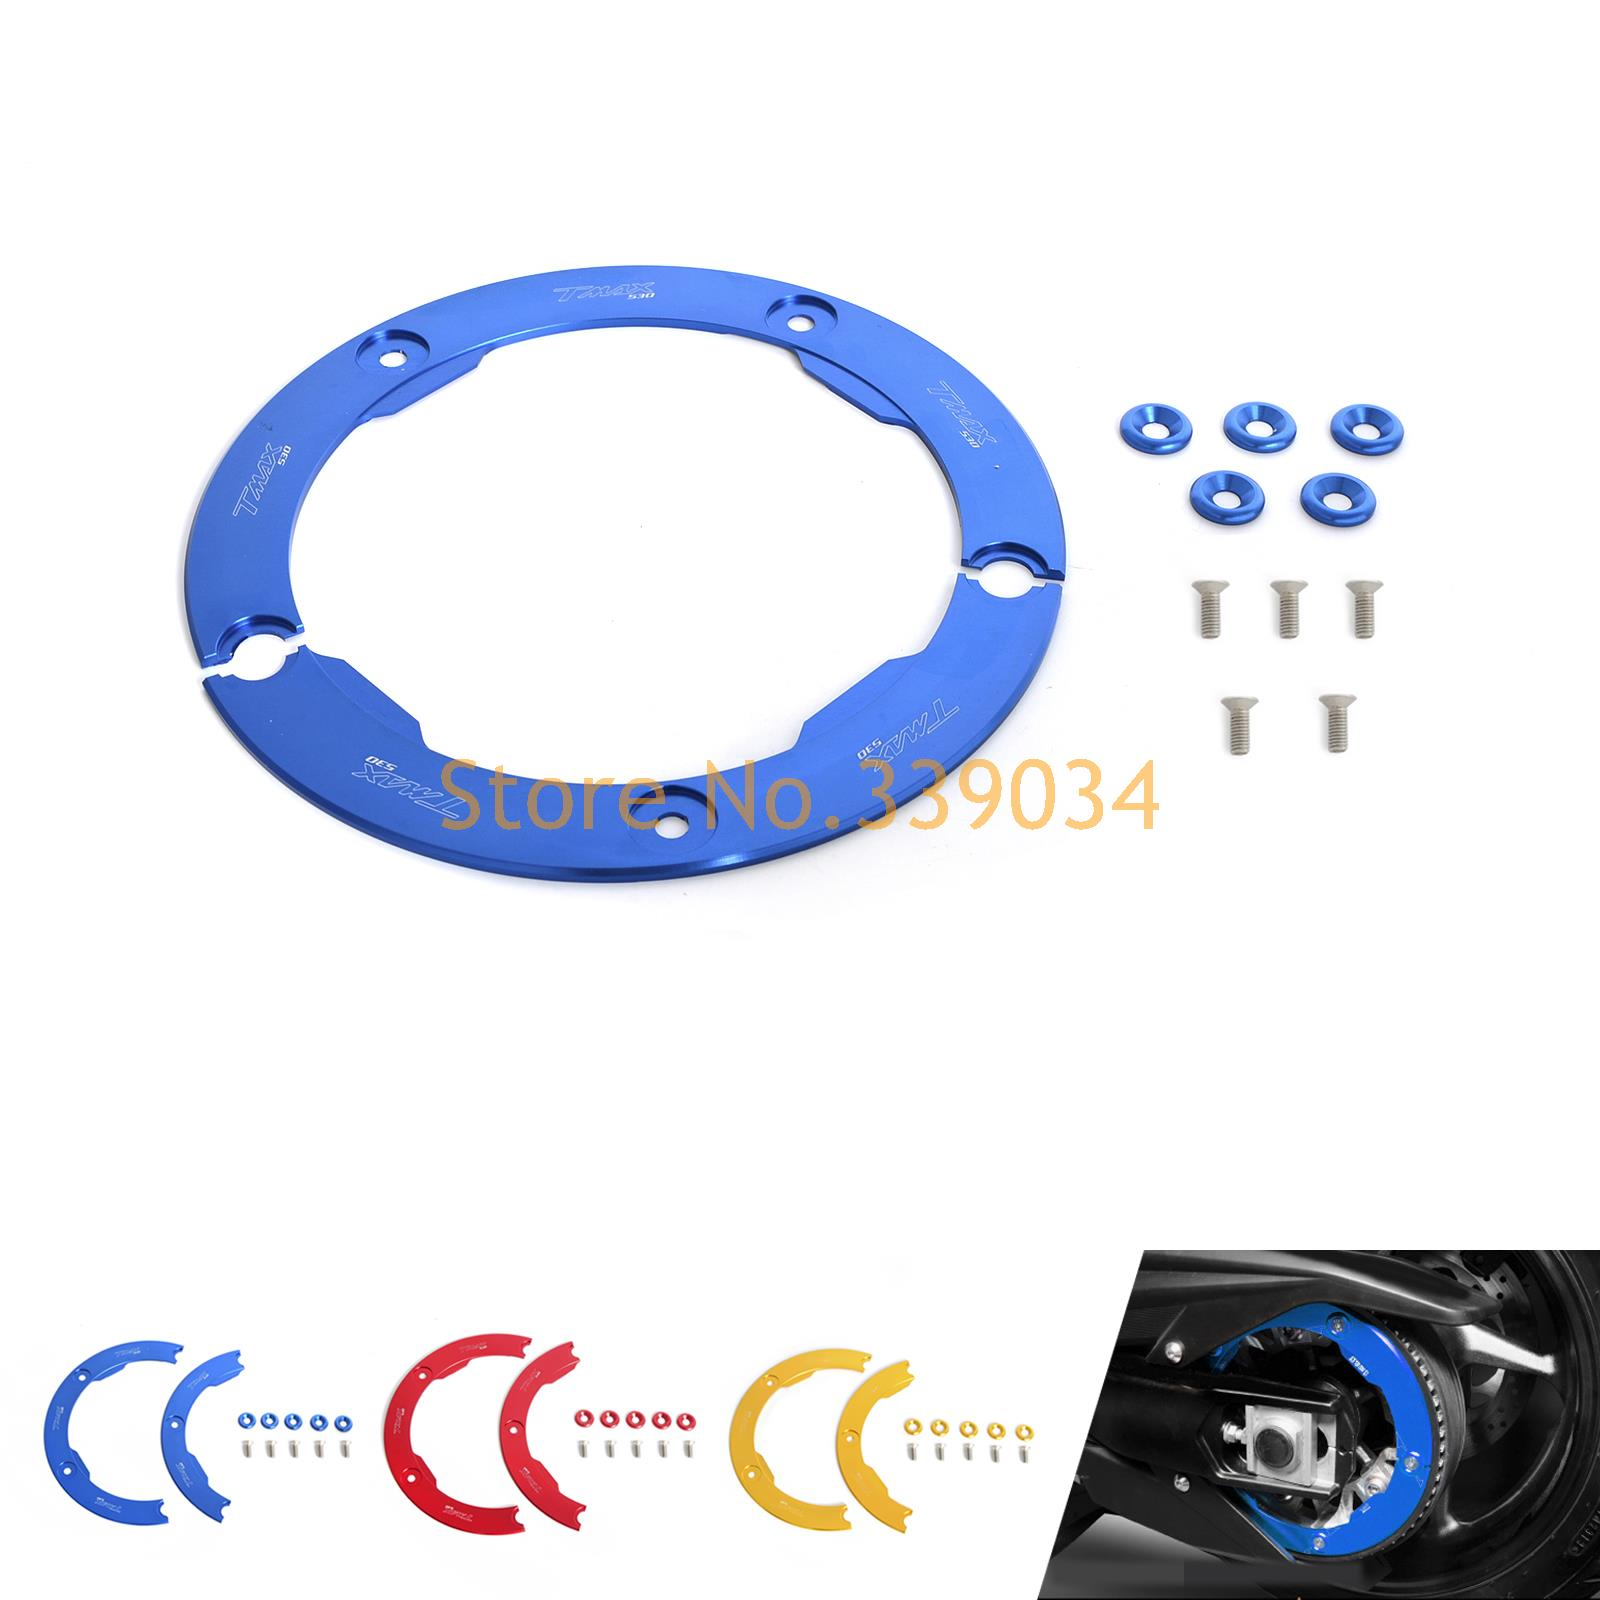 ФОТО Aluminum Transmission Belt Pully Cover Anodized For YAMAHA TMAX530  2012 2013 2014 2015